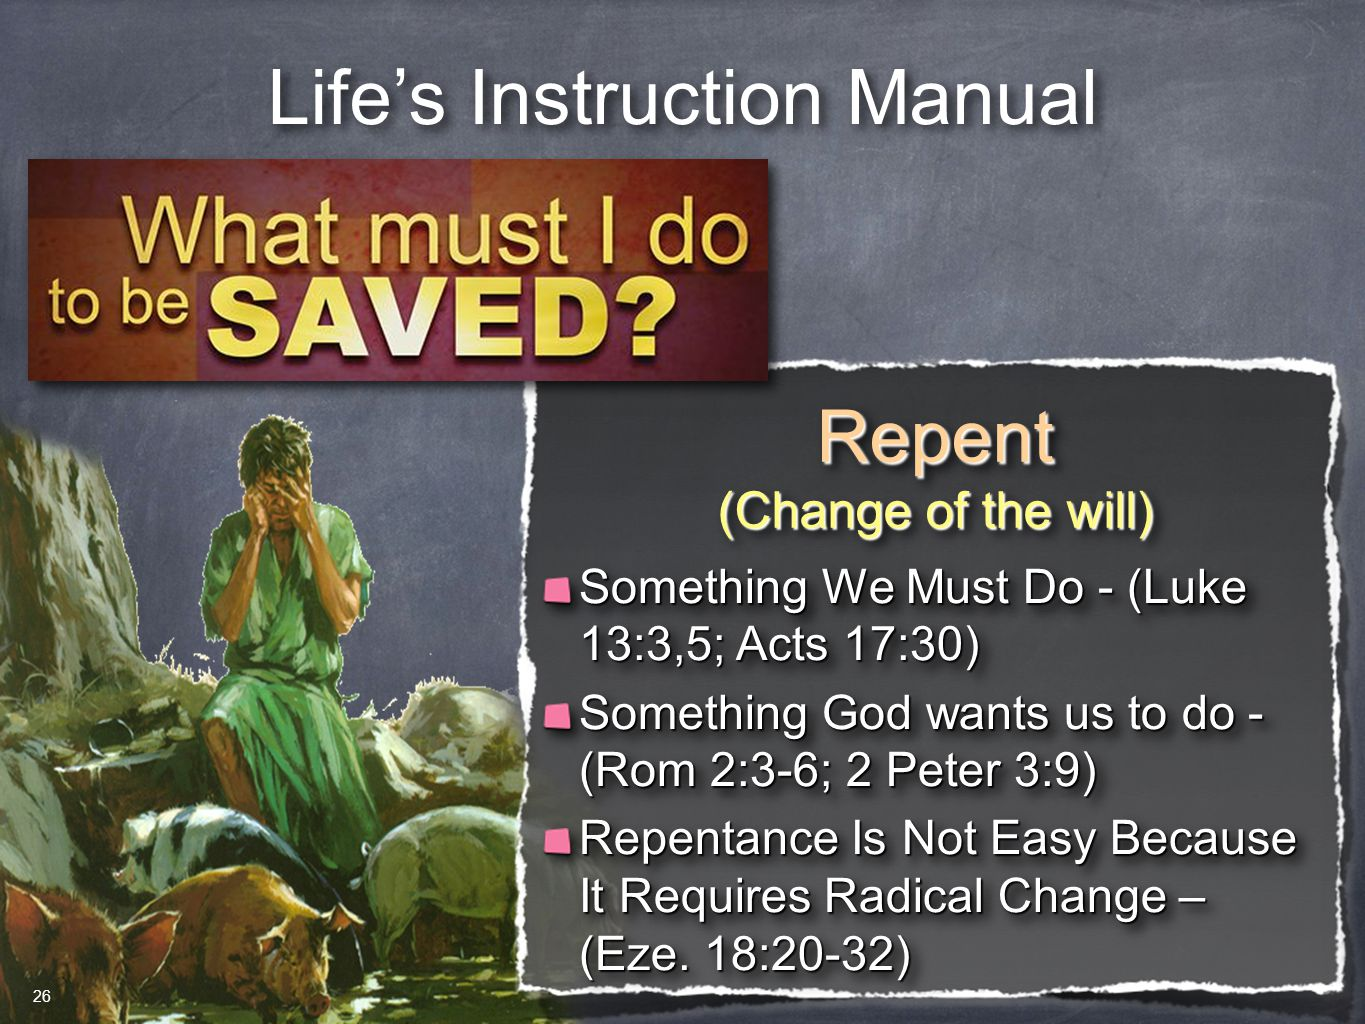 Life's Instruction Manual Repent (Change of the will) Repent Something We Must Do - (Luke 13:3,5; Acts 17:30) Something God wants us to do - (Rom 2:3-